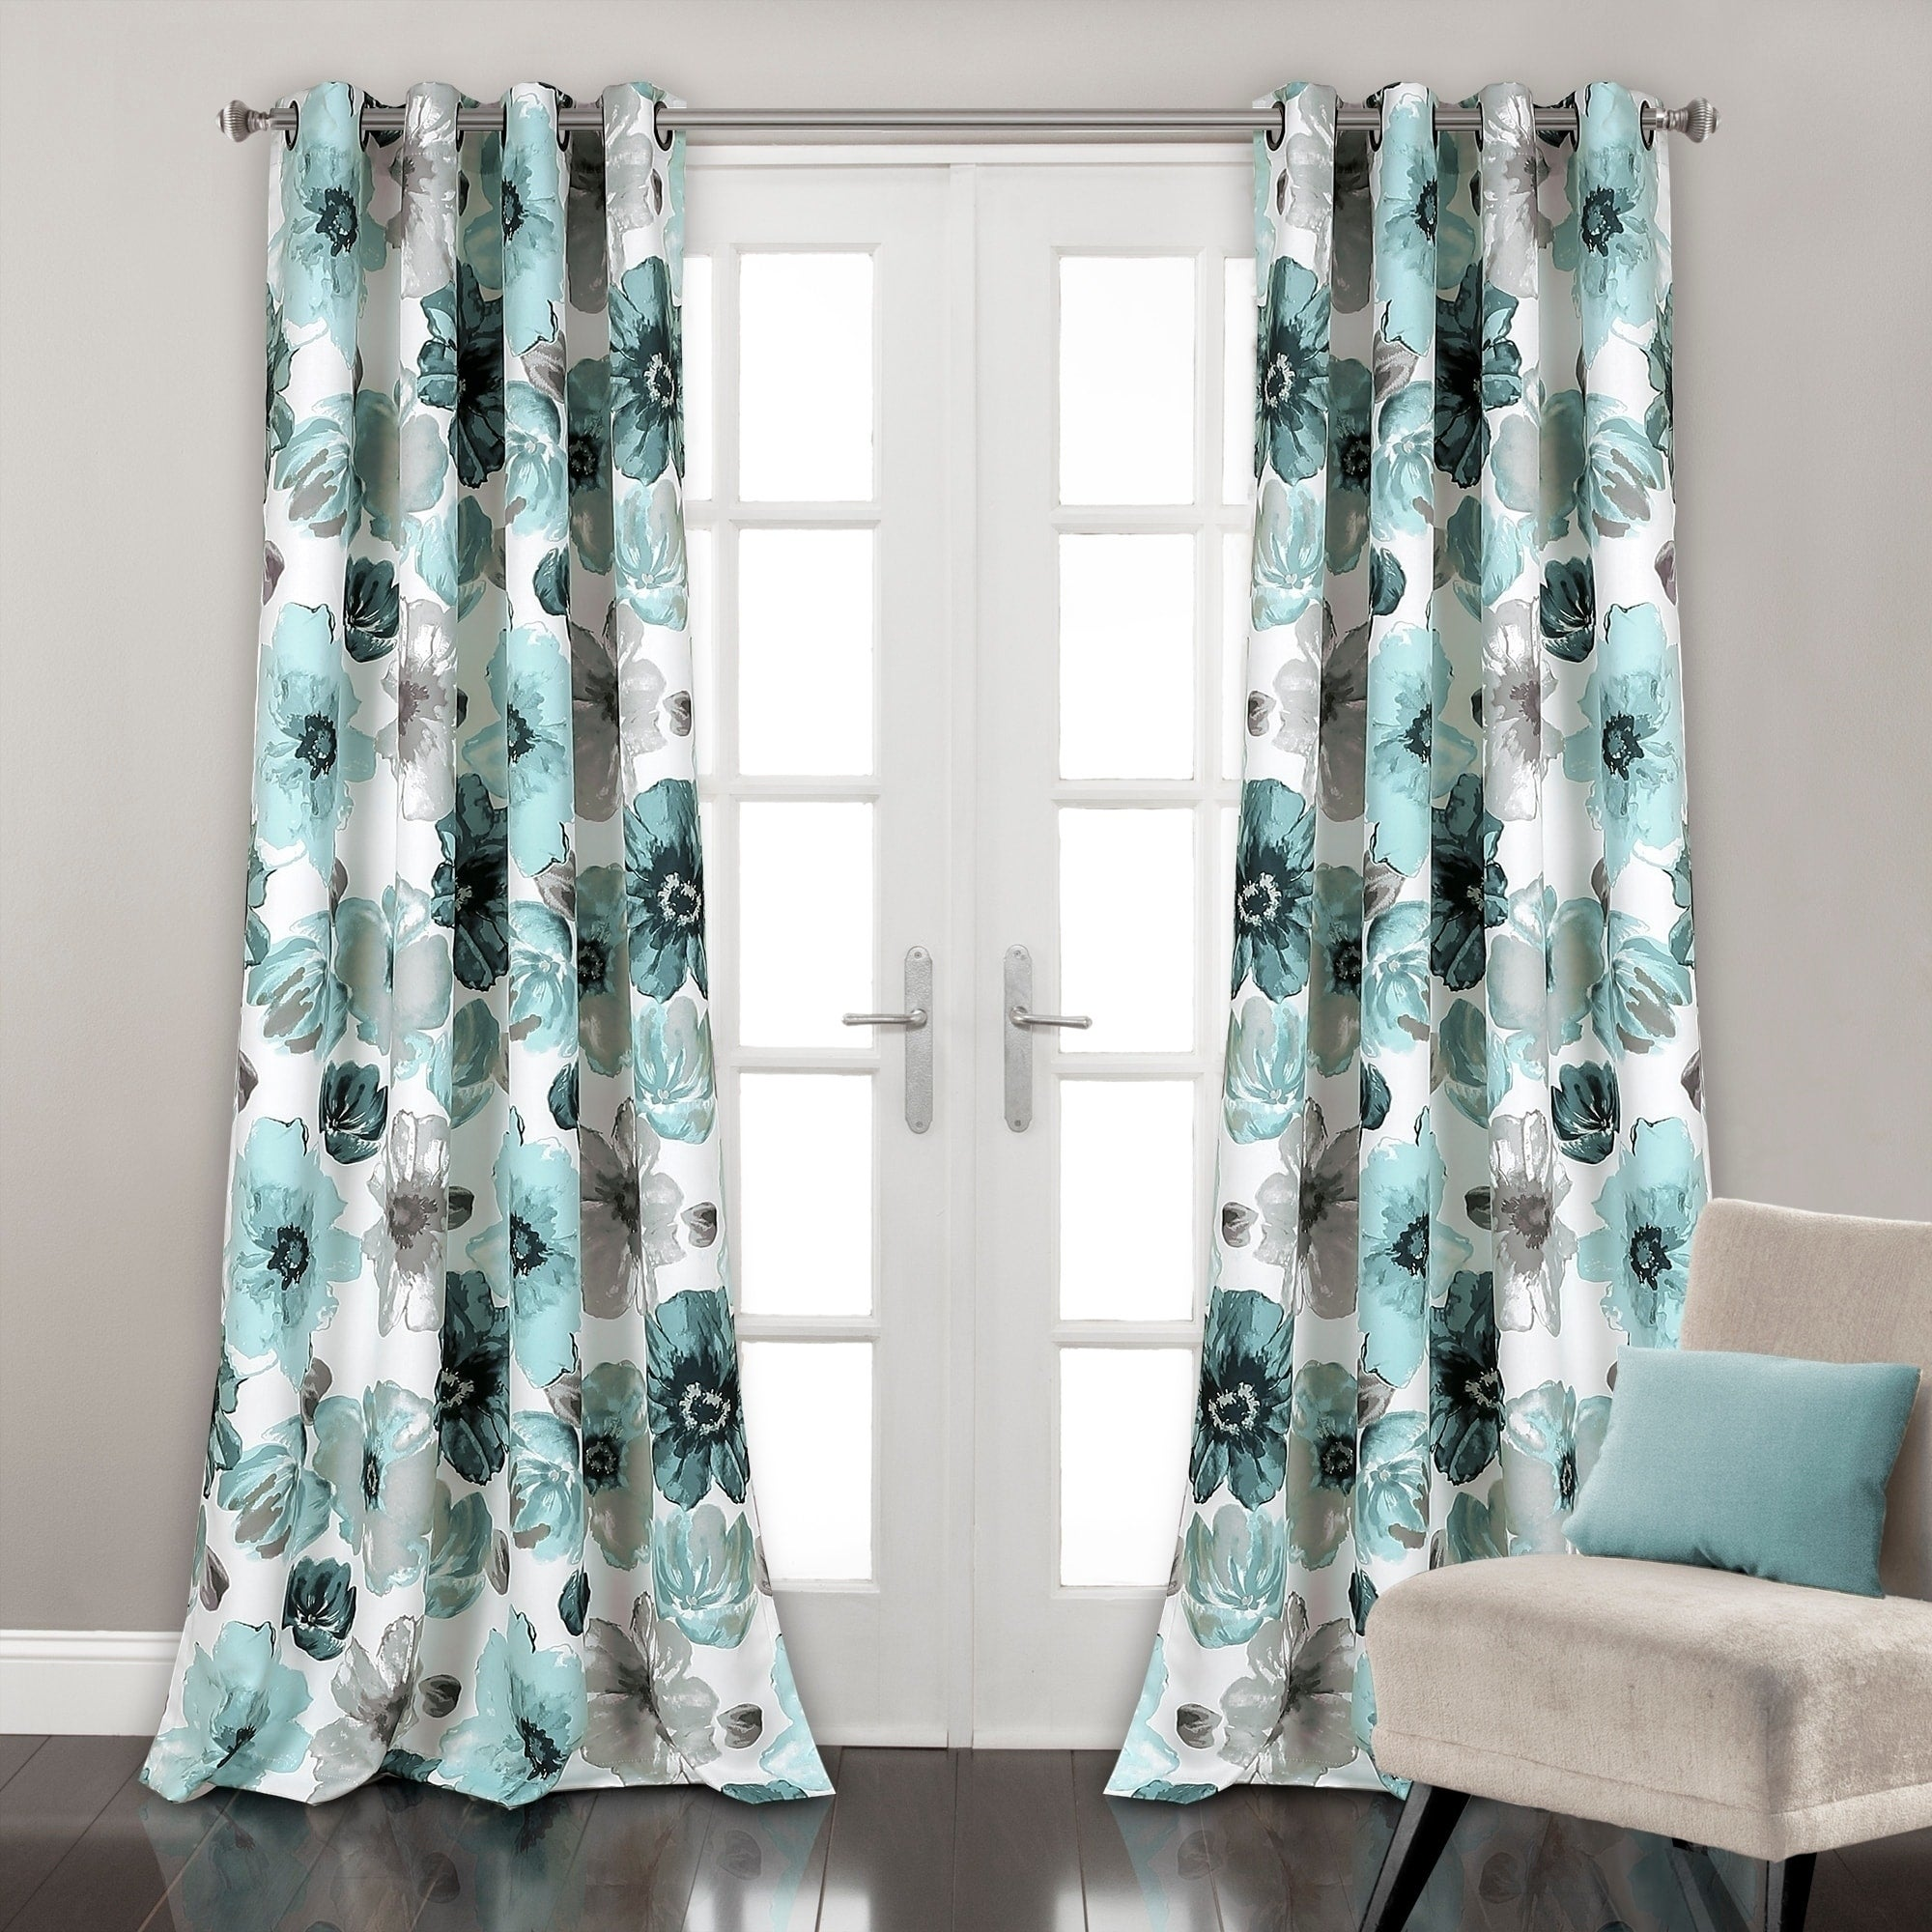 Buy Blue, 84 Inches Curtains & Drapes Online at Overstock.com | Our ...